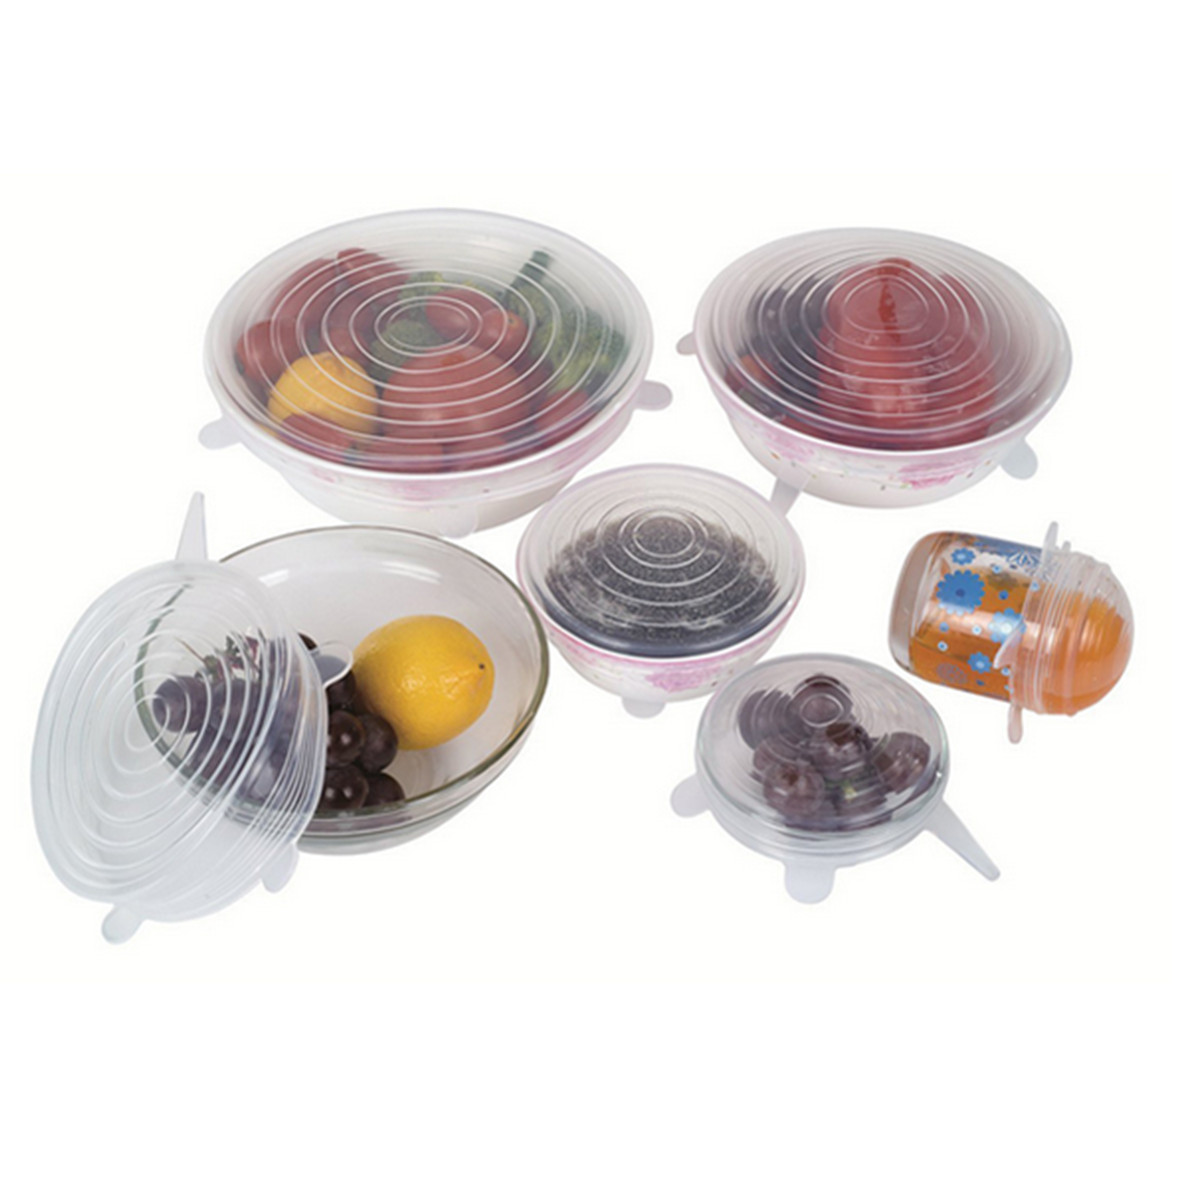 8PCS/SET Silicone Lids For Bowls Cups Food Preservation Reusable Cover Saver Stretch Lid Wrap